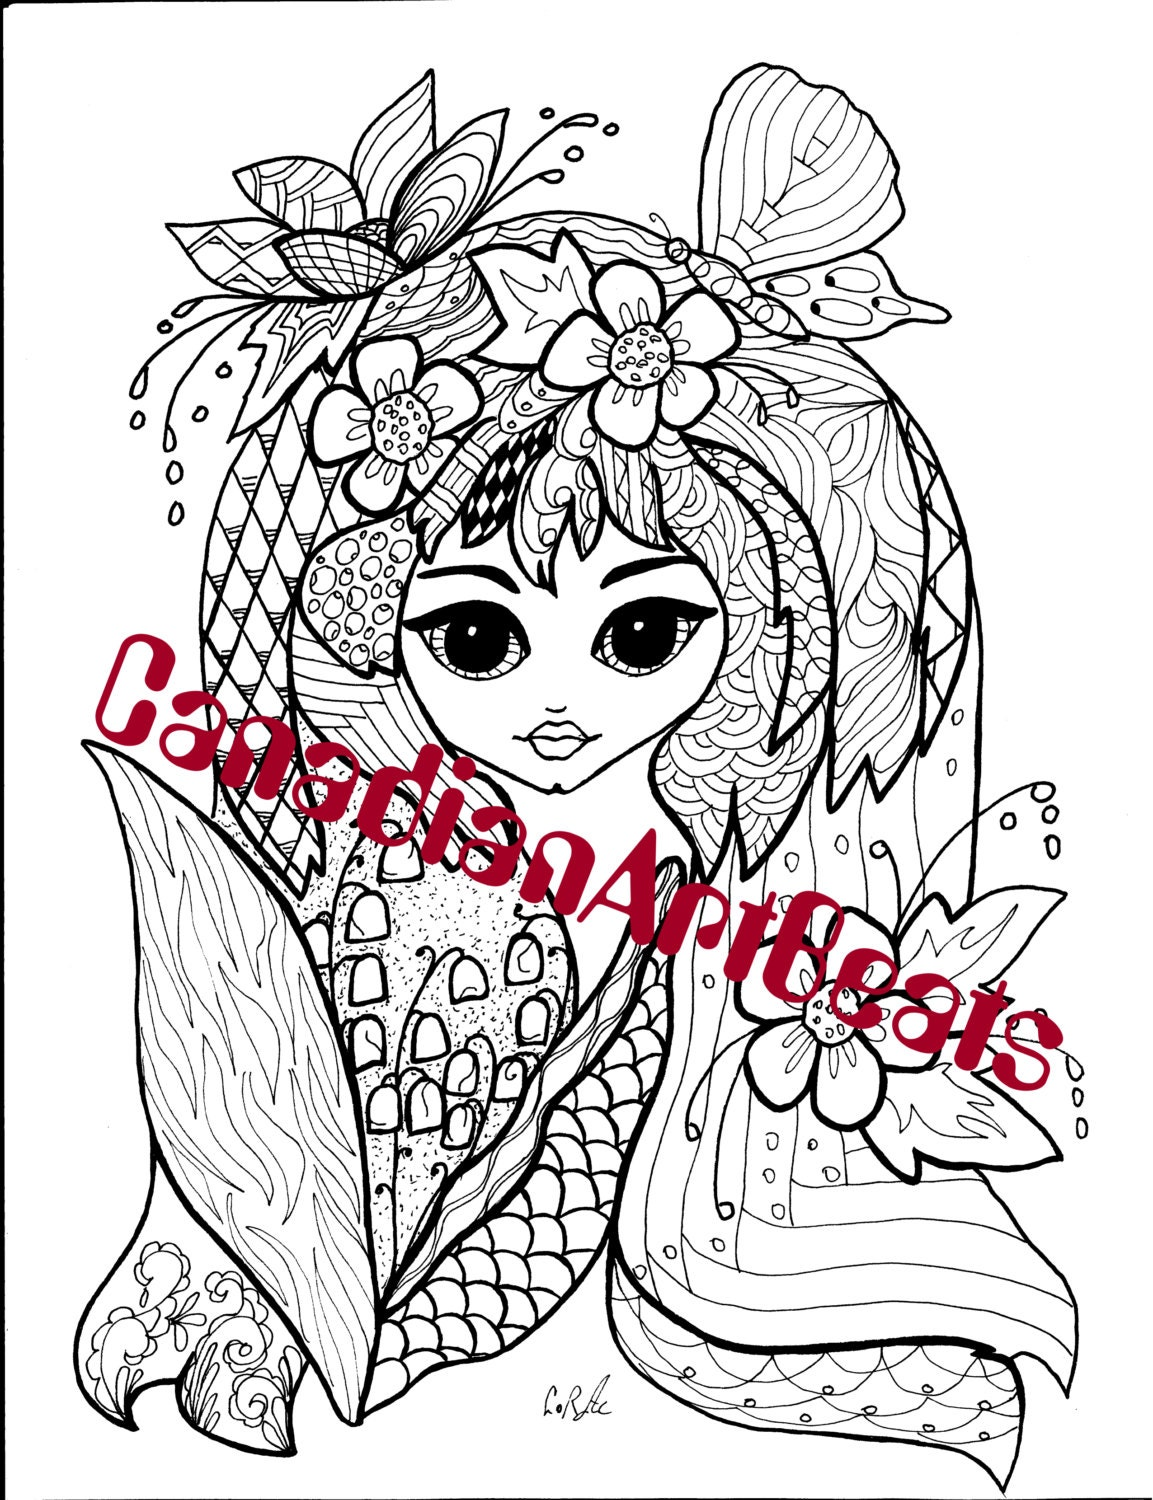 garden fairy fantasy coloring page by canadianartbeats on etsy. Black Bedroom Furniture Sets. Home Design Ideas